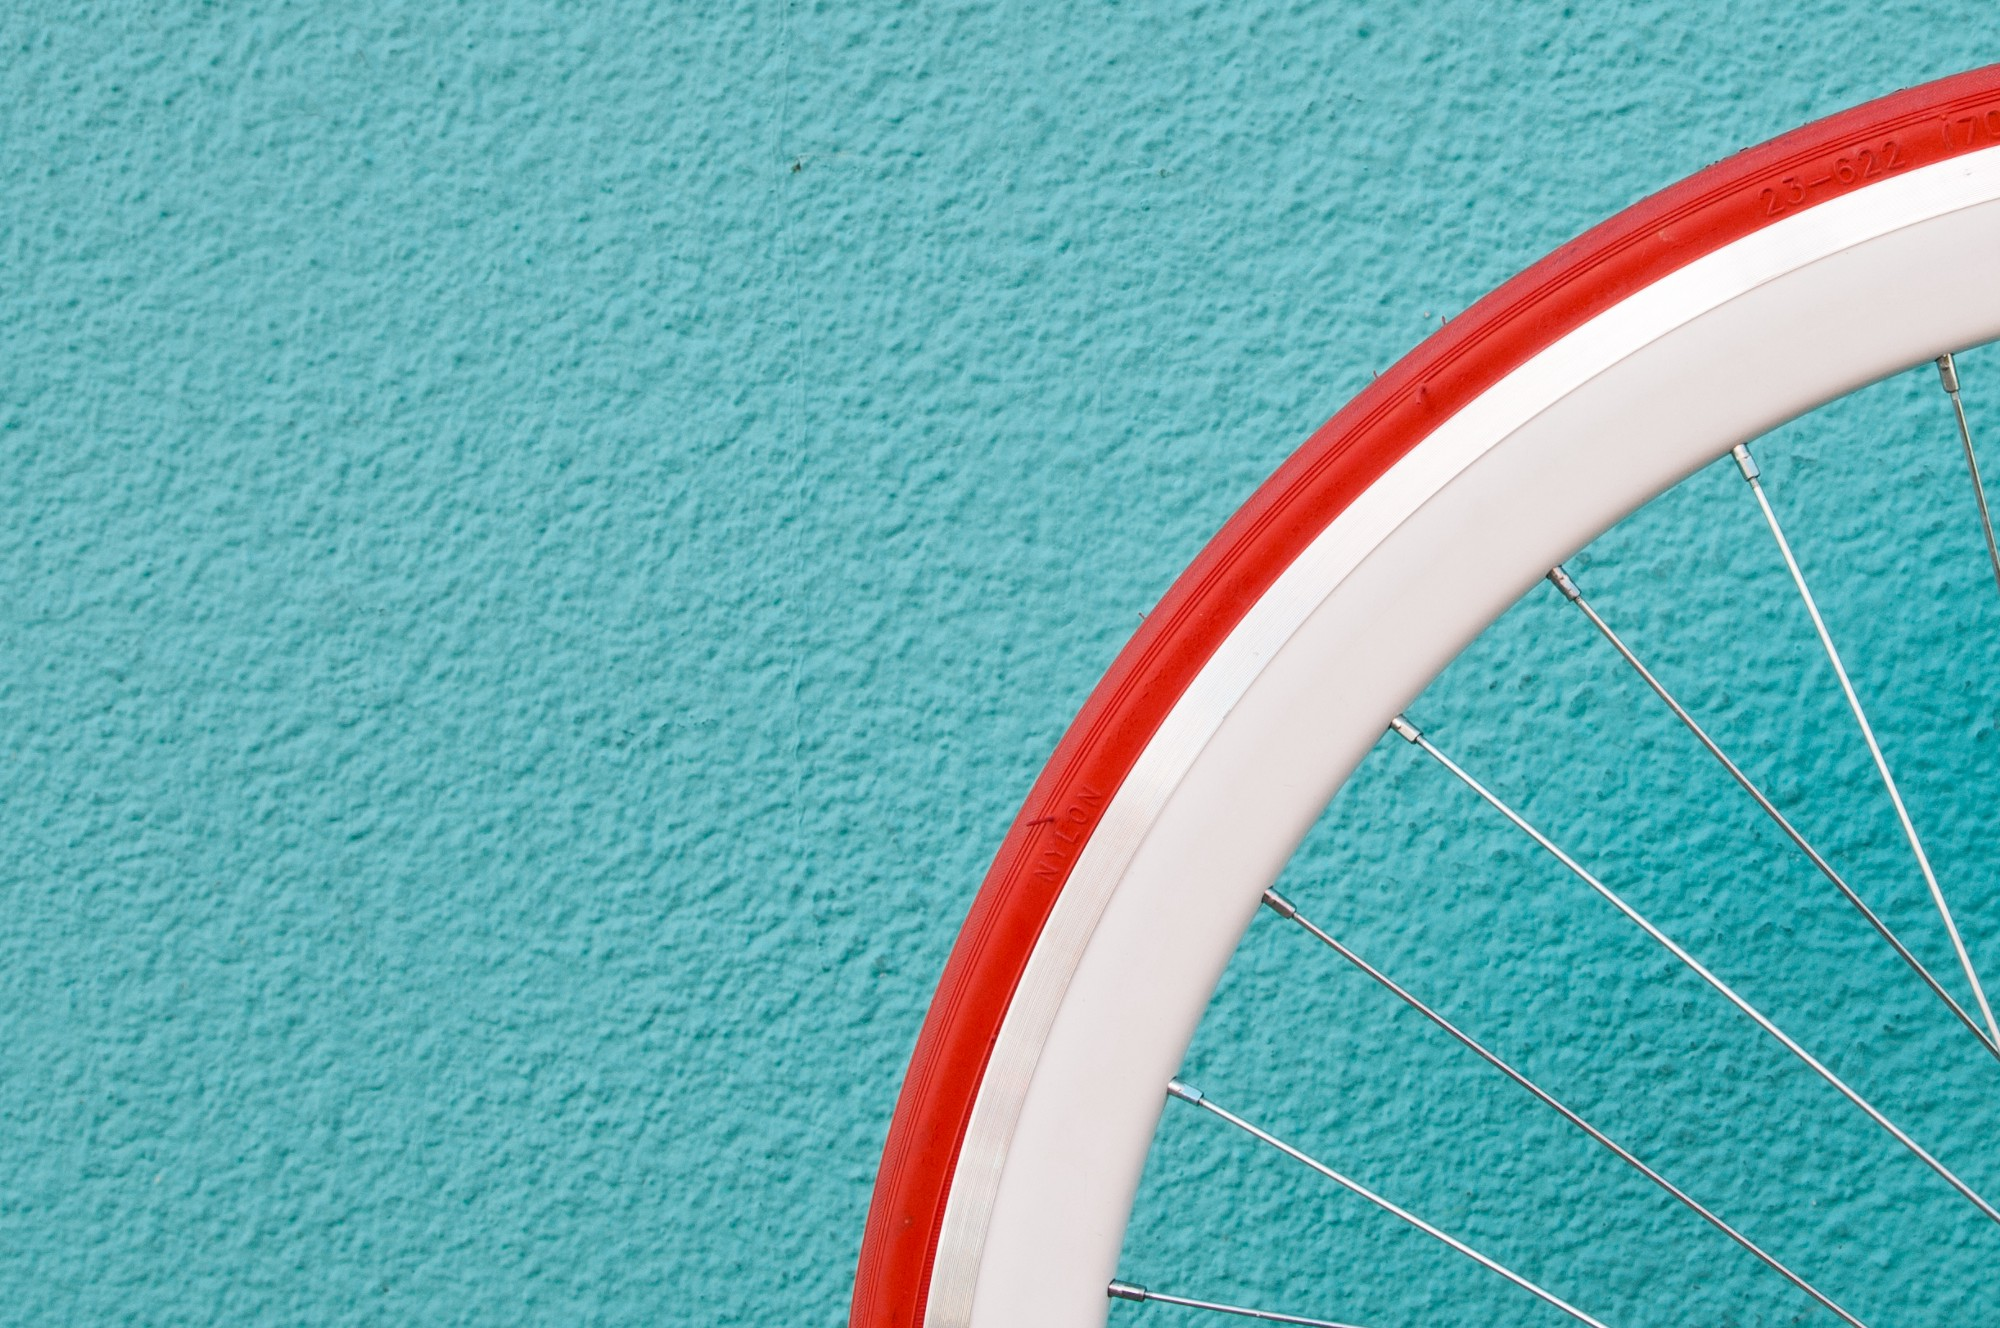 photo of red bicycle wheel